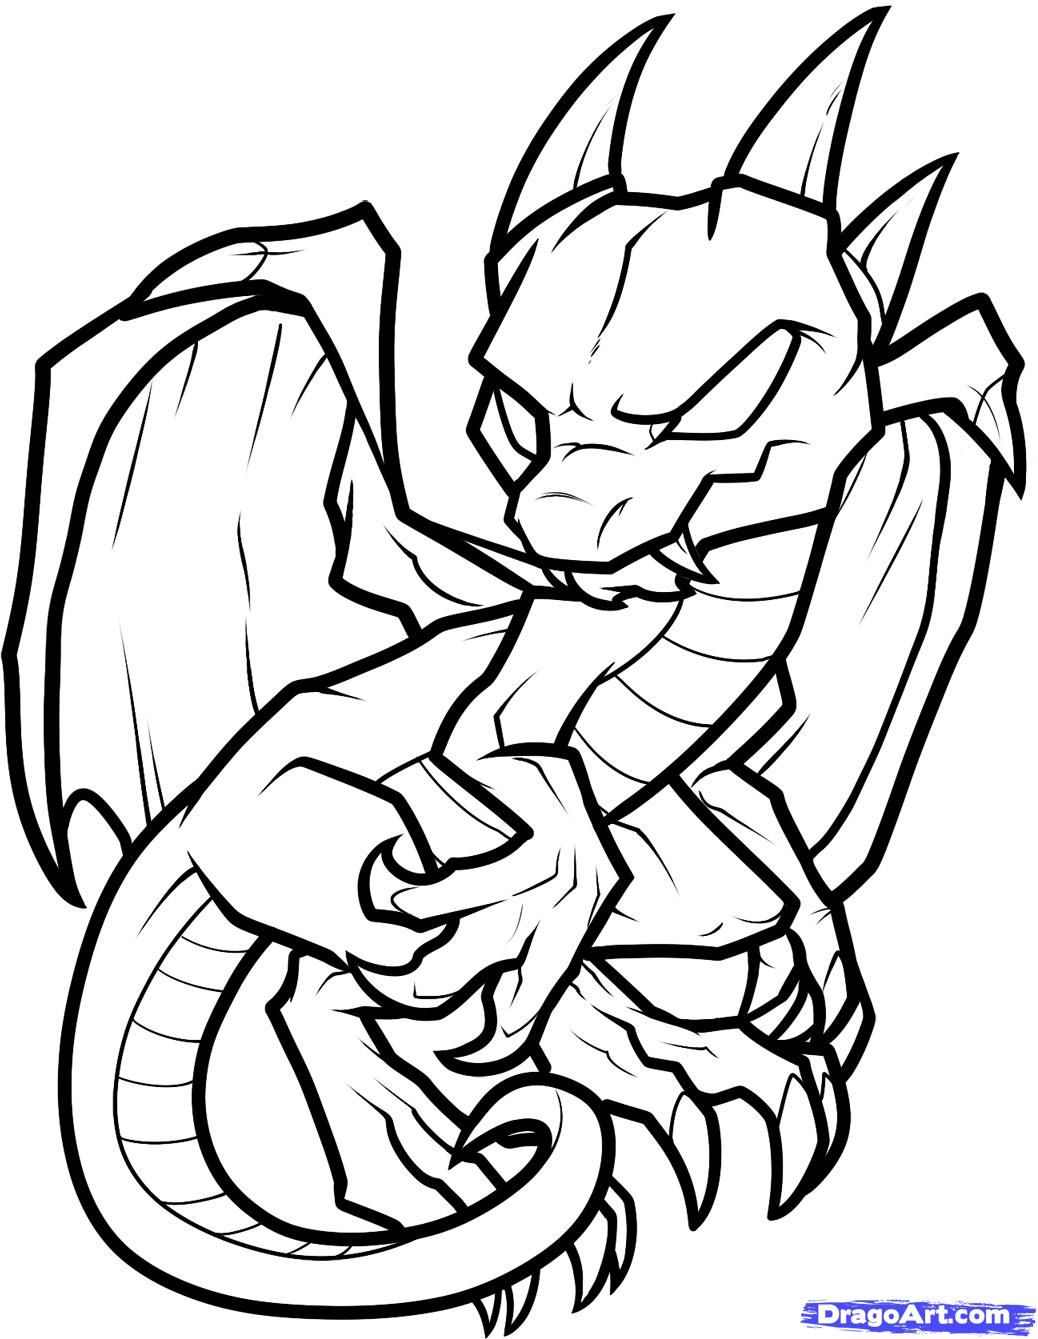 Dragon Coloring Pages | How to Draw an Anthro Baby Dragon, Anthro ...